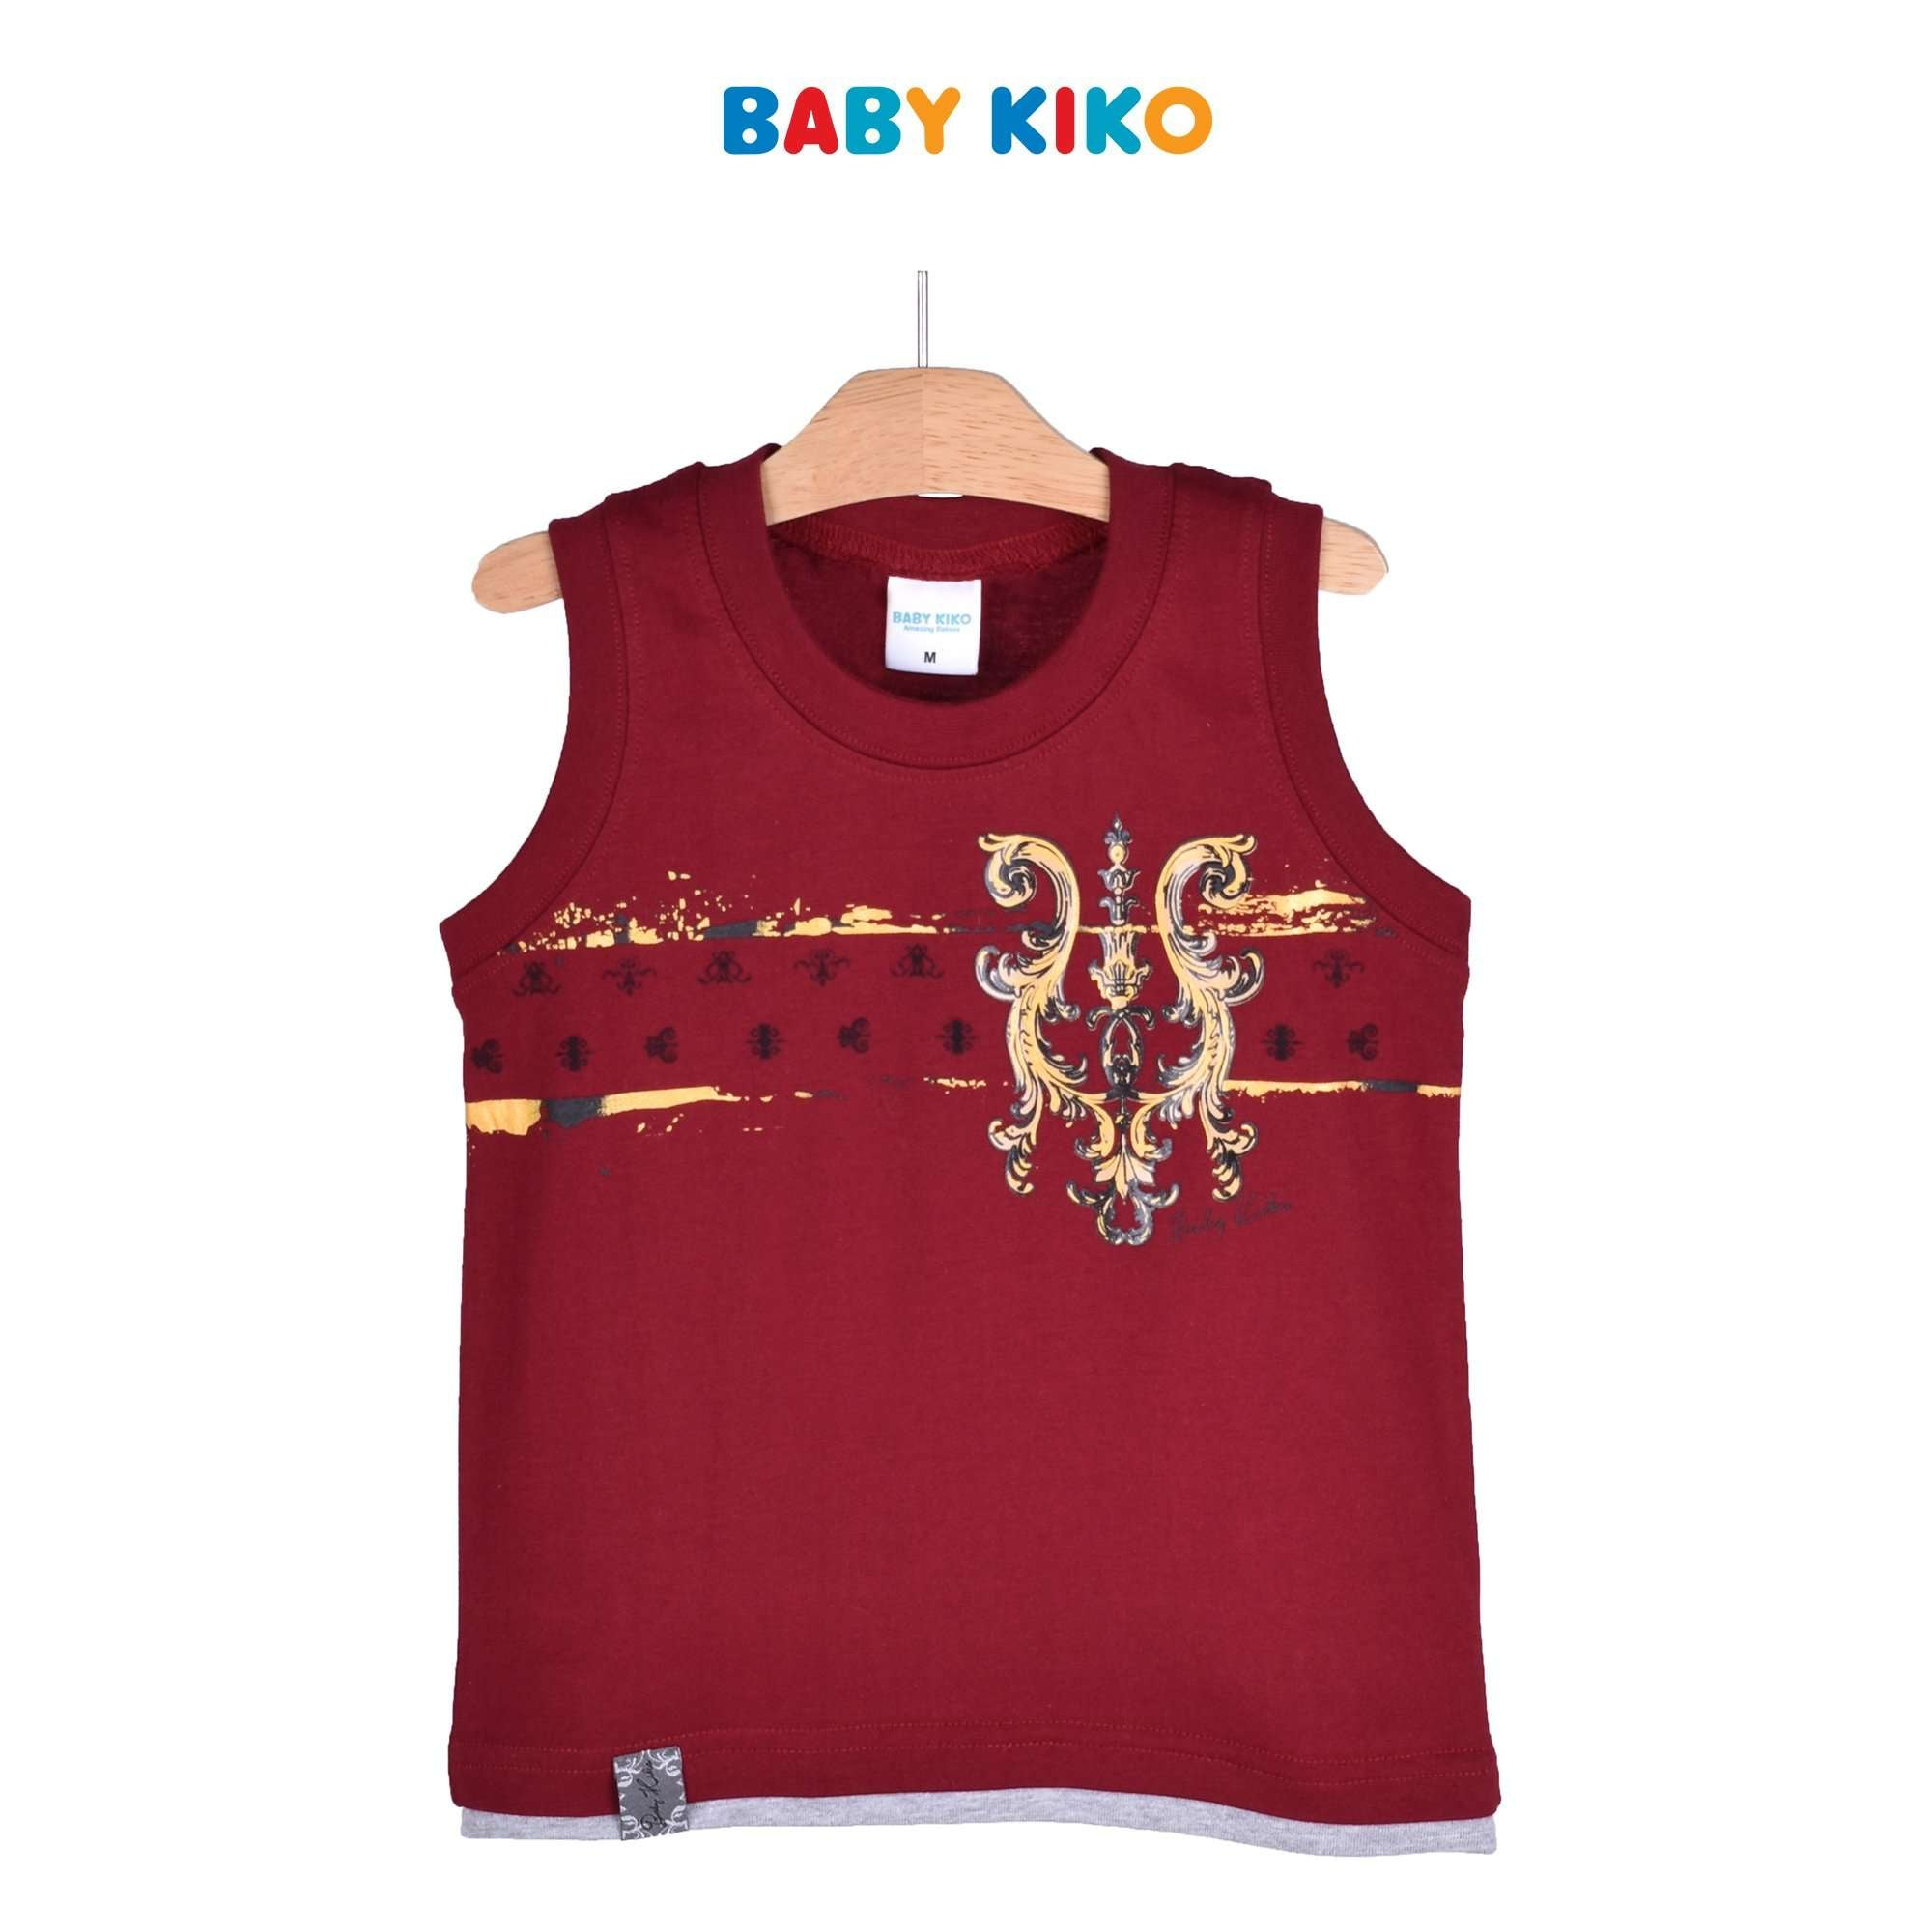 Baby KIKO Toddler Boy Sleeveless Tee 335105-101 : Buy Baby KIKO online at CMG.MY